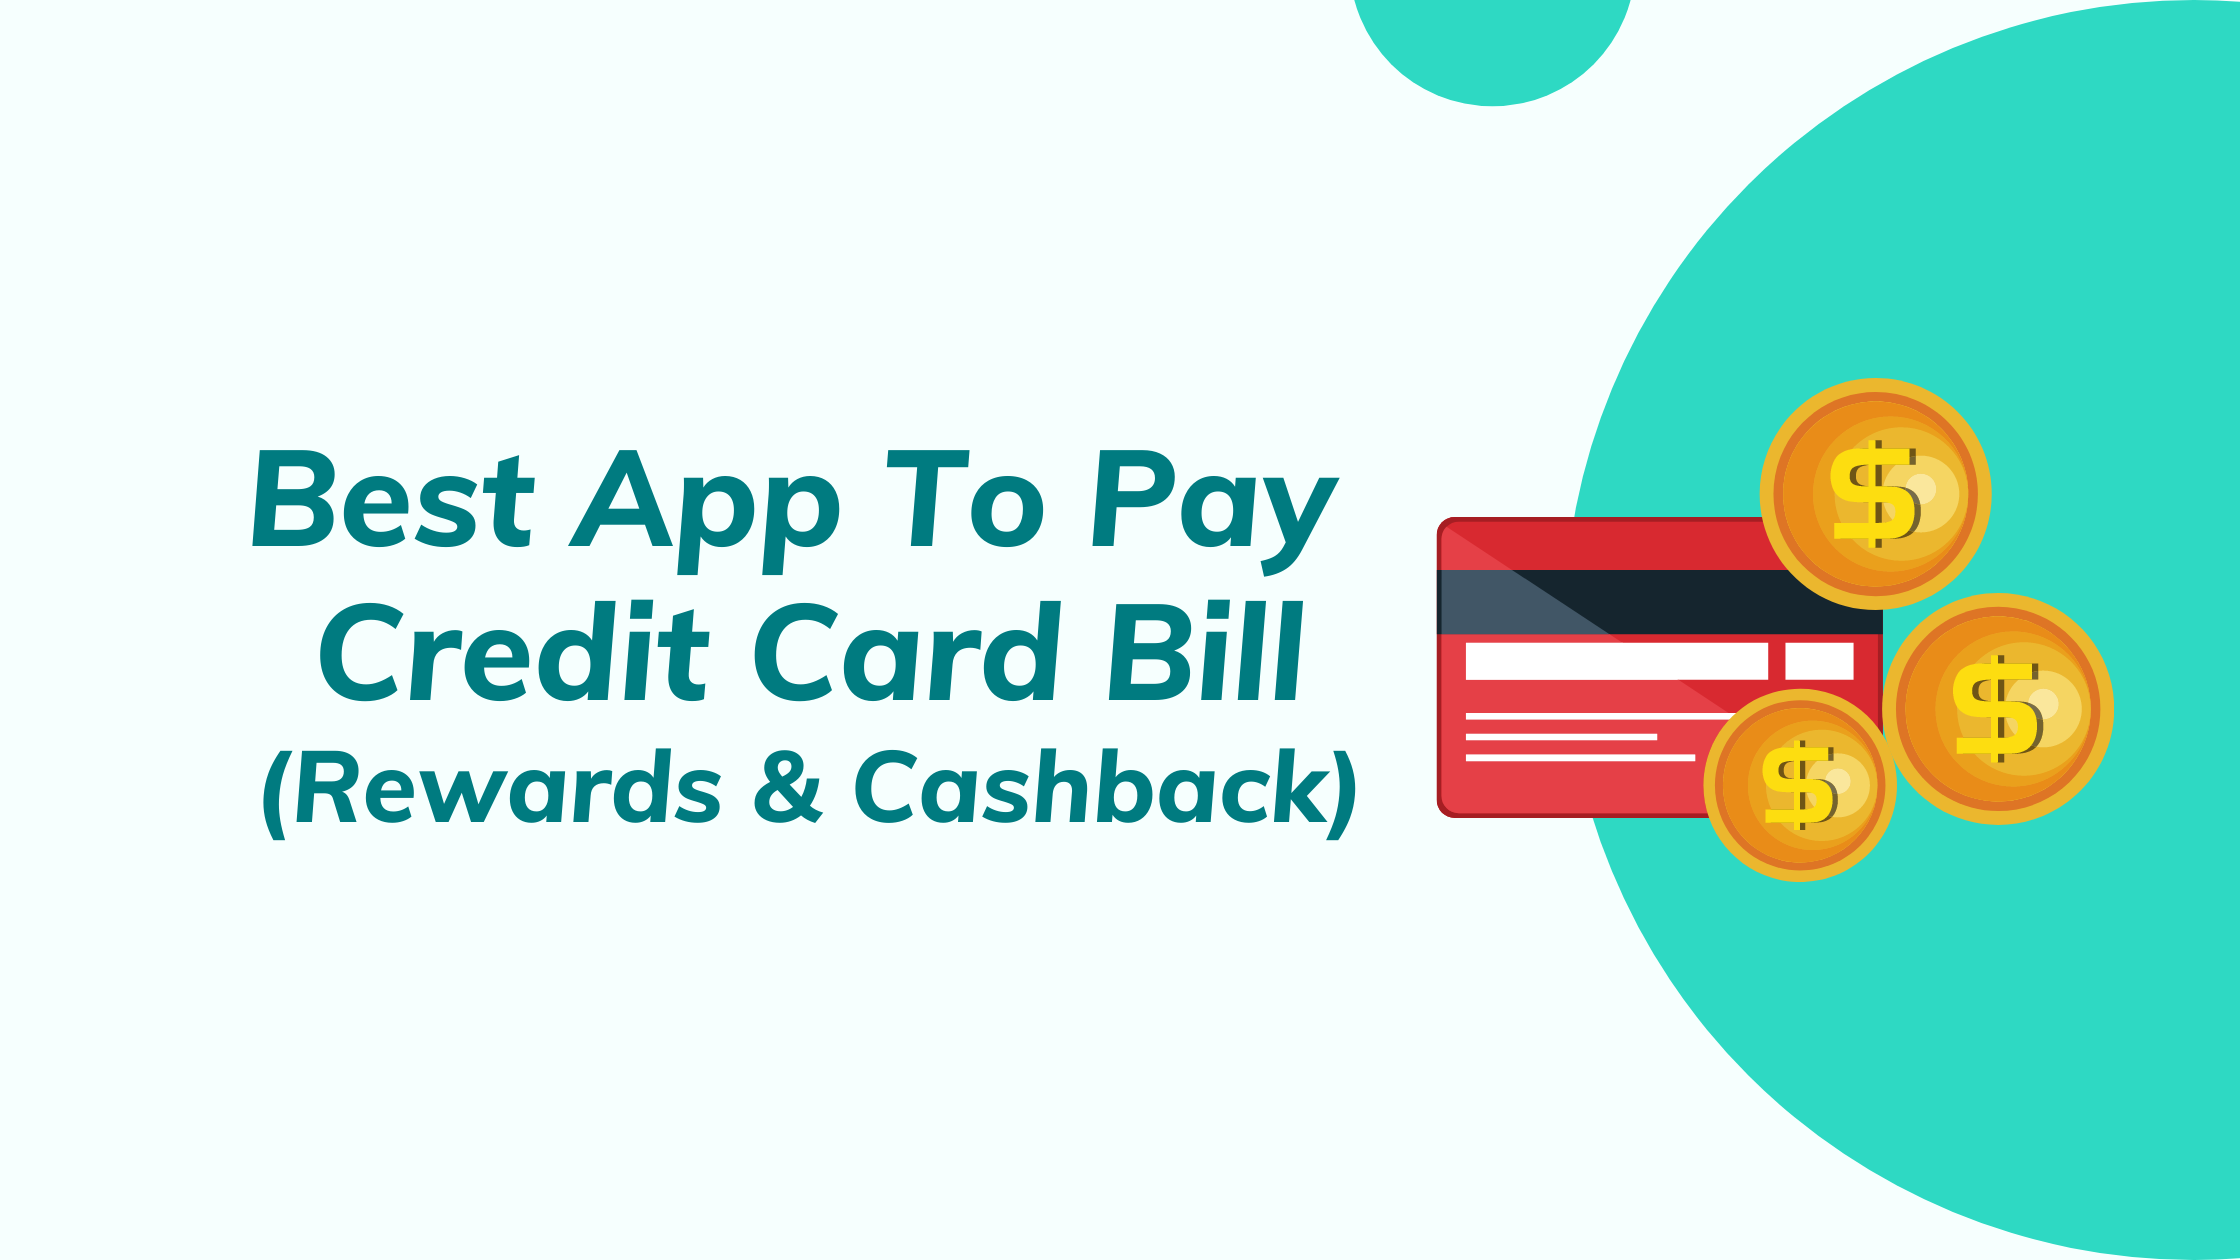 Best App To Pay Credit Card Bill